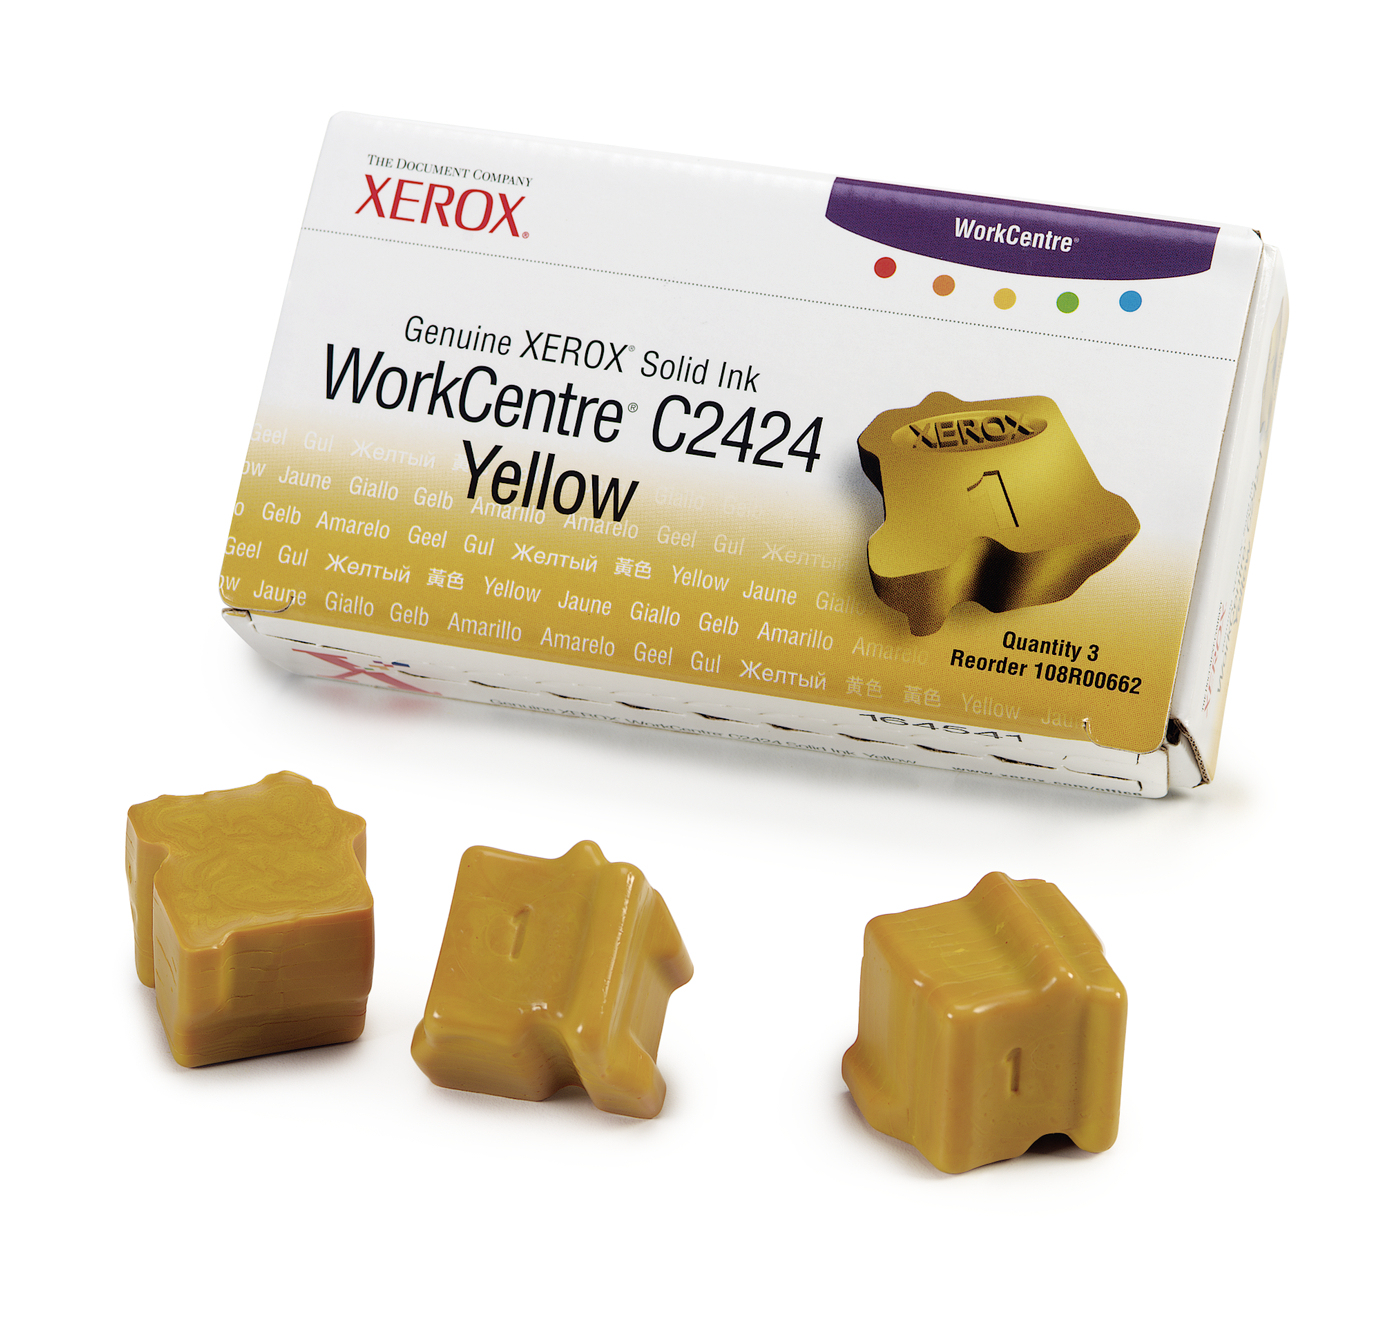 Compatible Xerox (108R00662) Yellow Solid Ink Cartridge 108R00662 - rem01